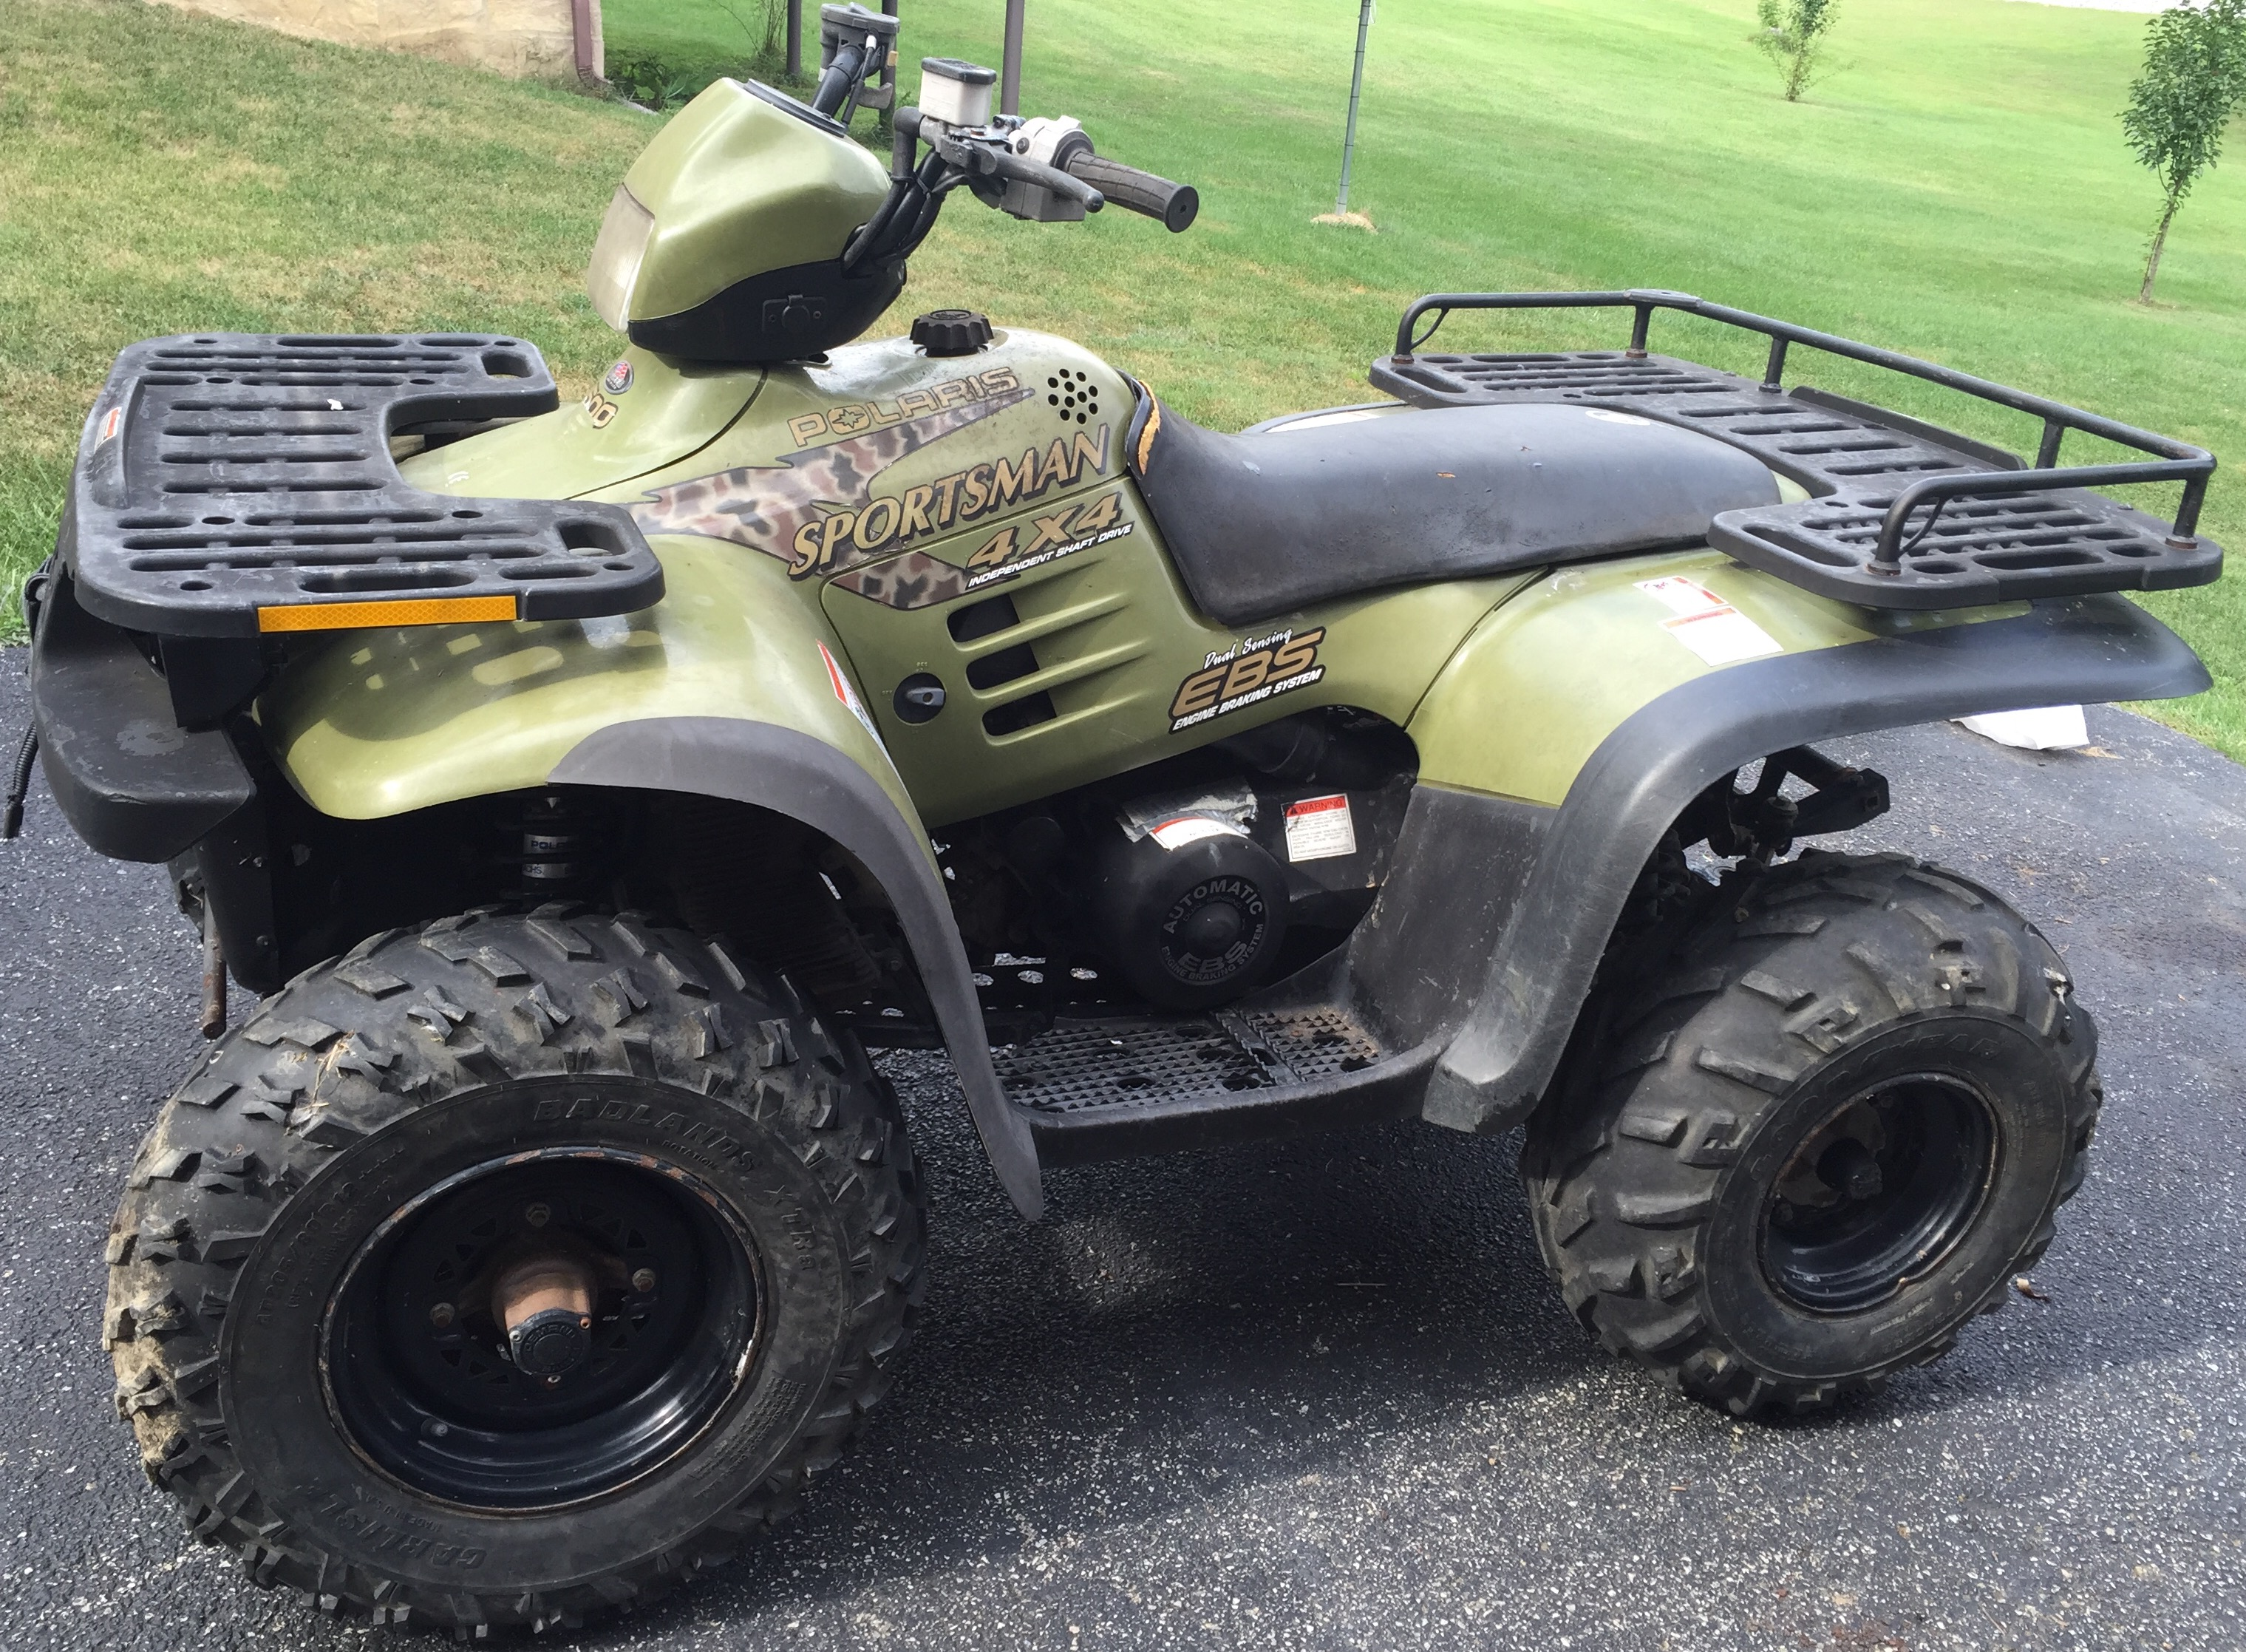 1999 polaris sportsman 500 looking for info advice polaris atv forum. Black Bedroom Furniture Sets. Home Design Ideas